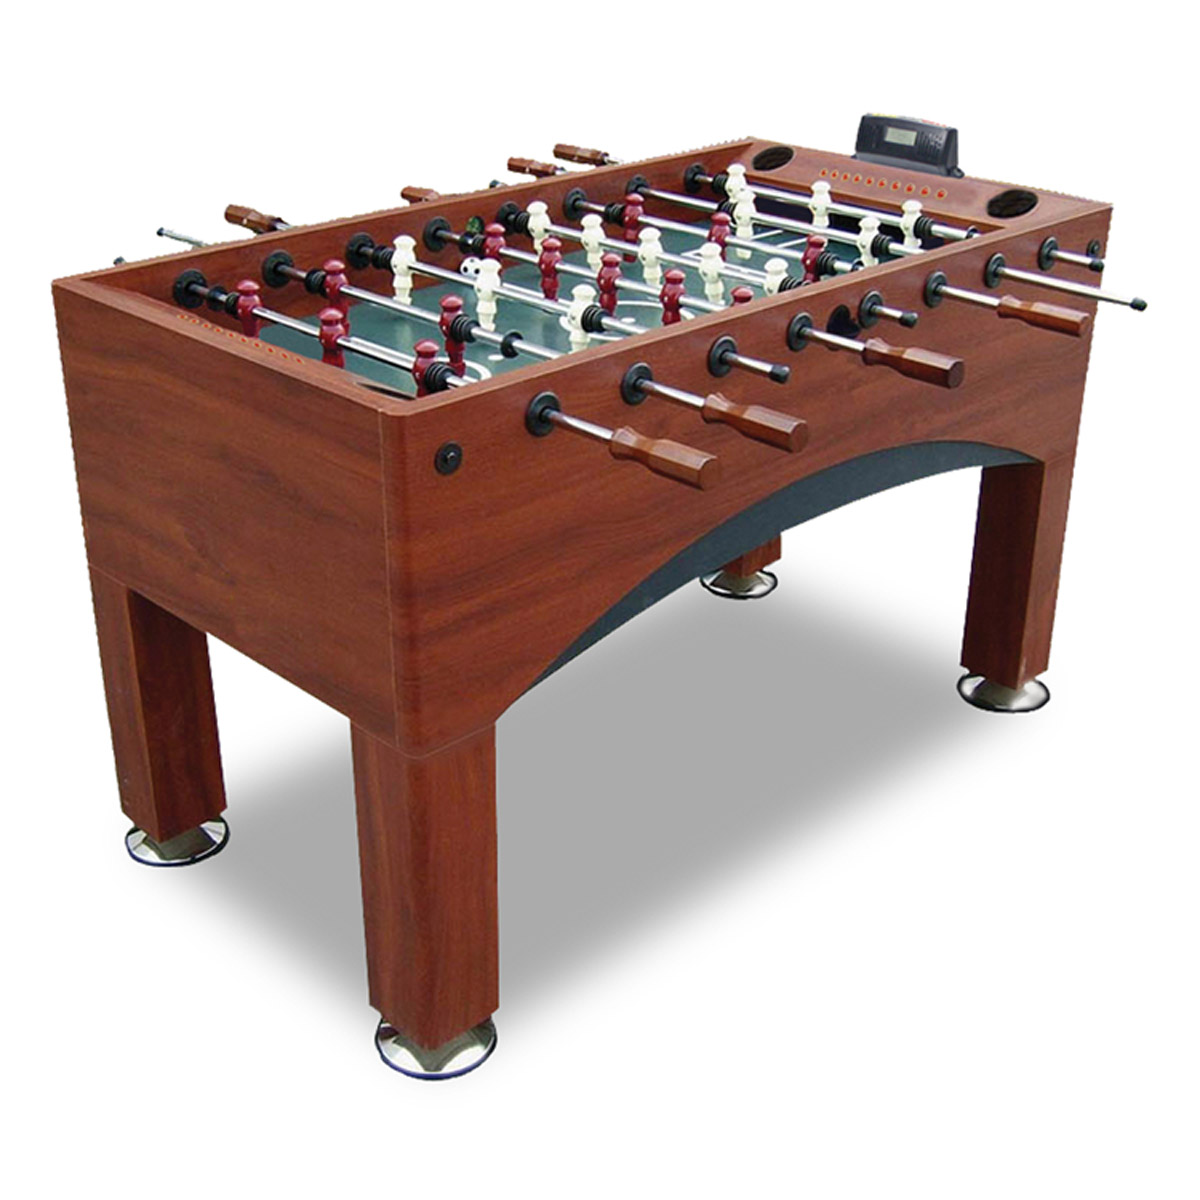 Adjustable electronic goal foosball table for 12 in 1 game table sears